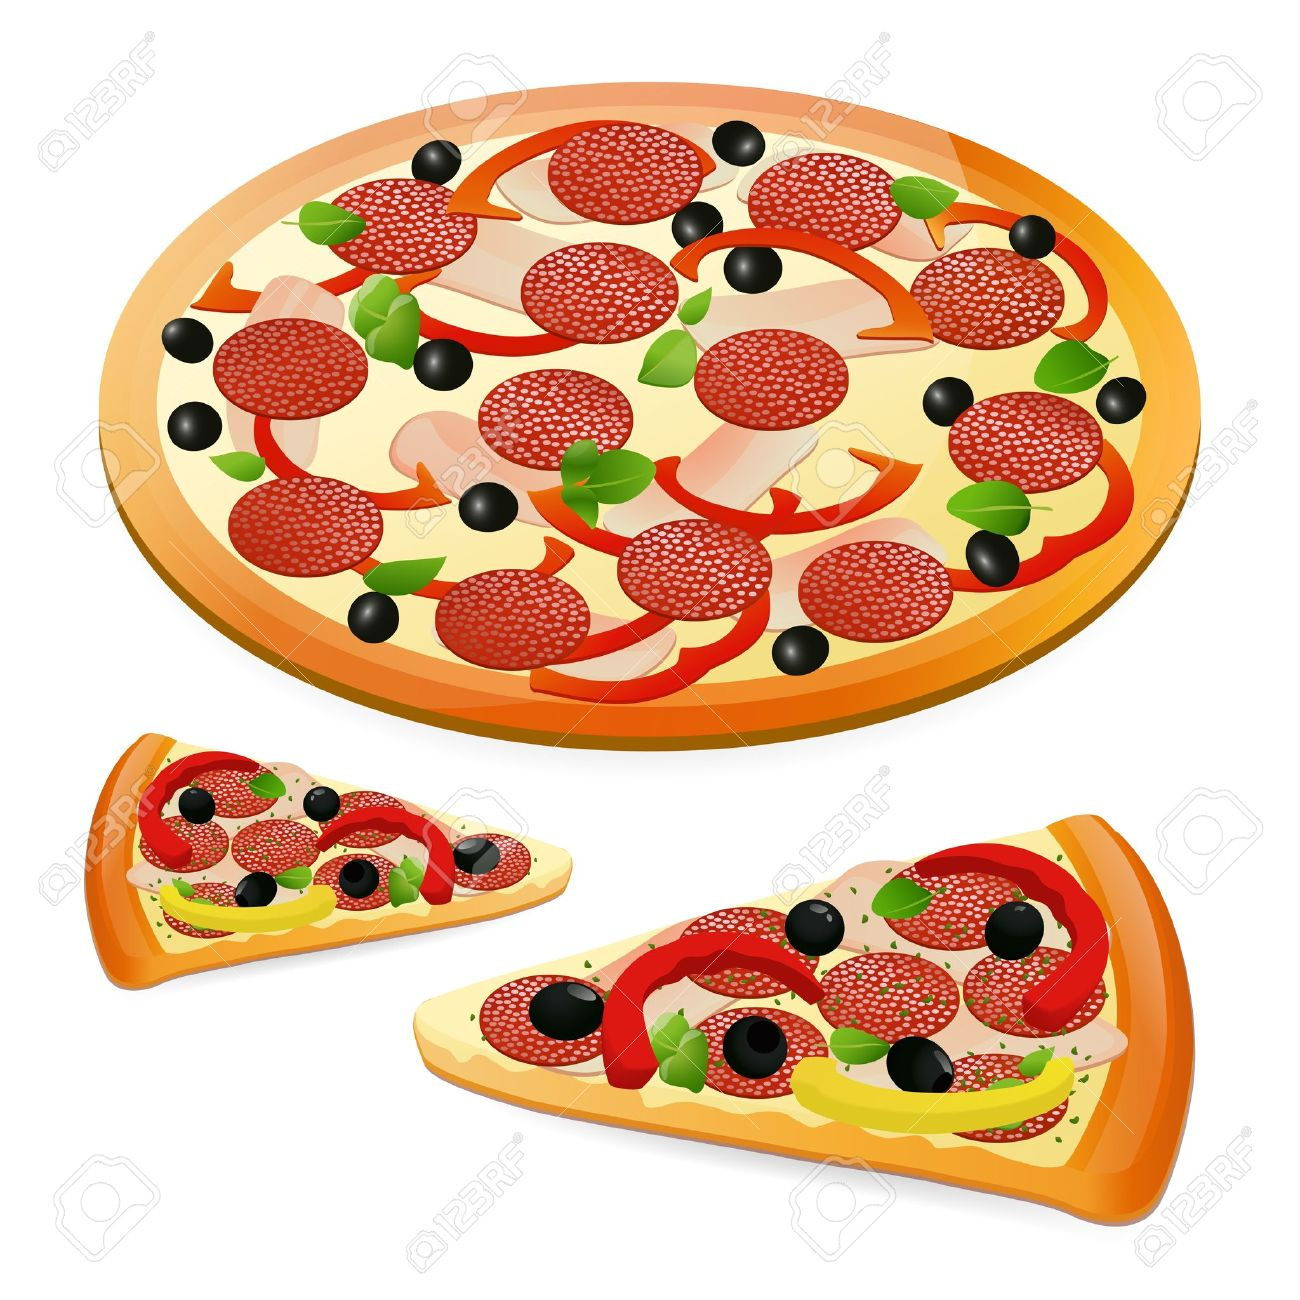 Pizza. Vector illustration Stock Vector - 12489403